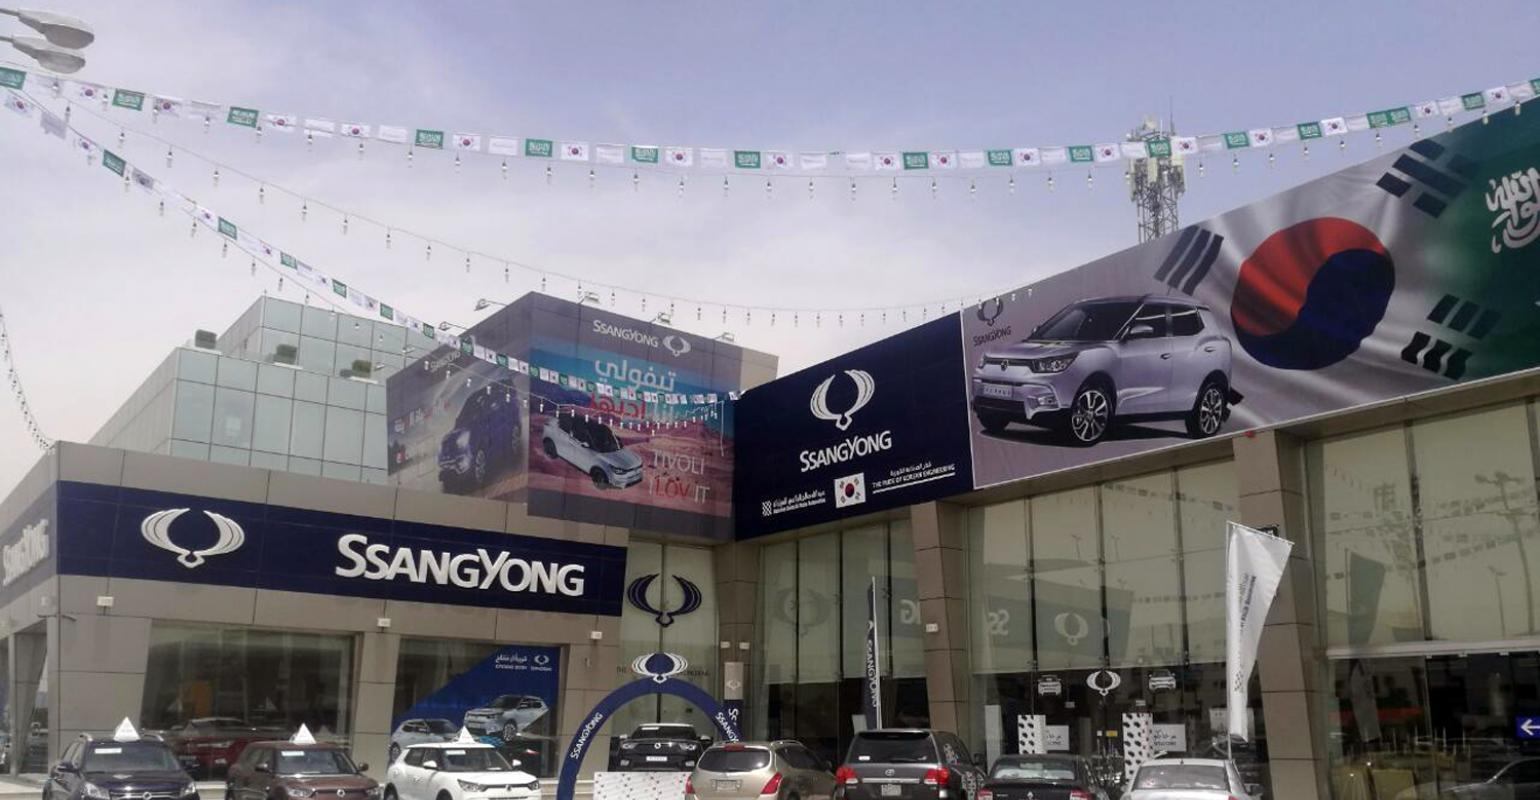 Ssangyong | Korean Automaker Launches Sales, Plans JV in